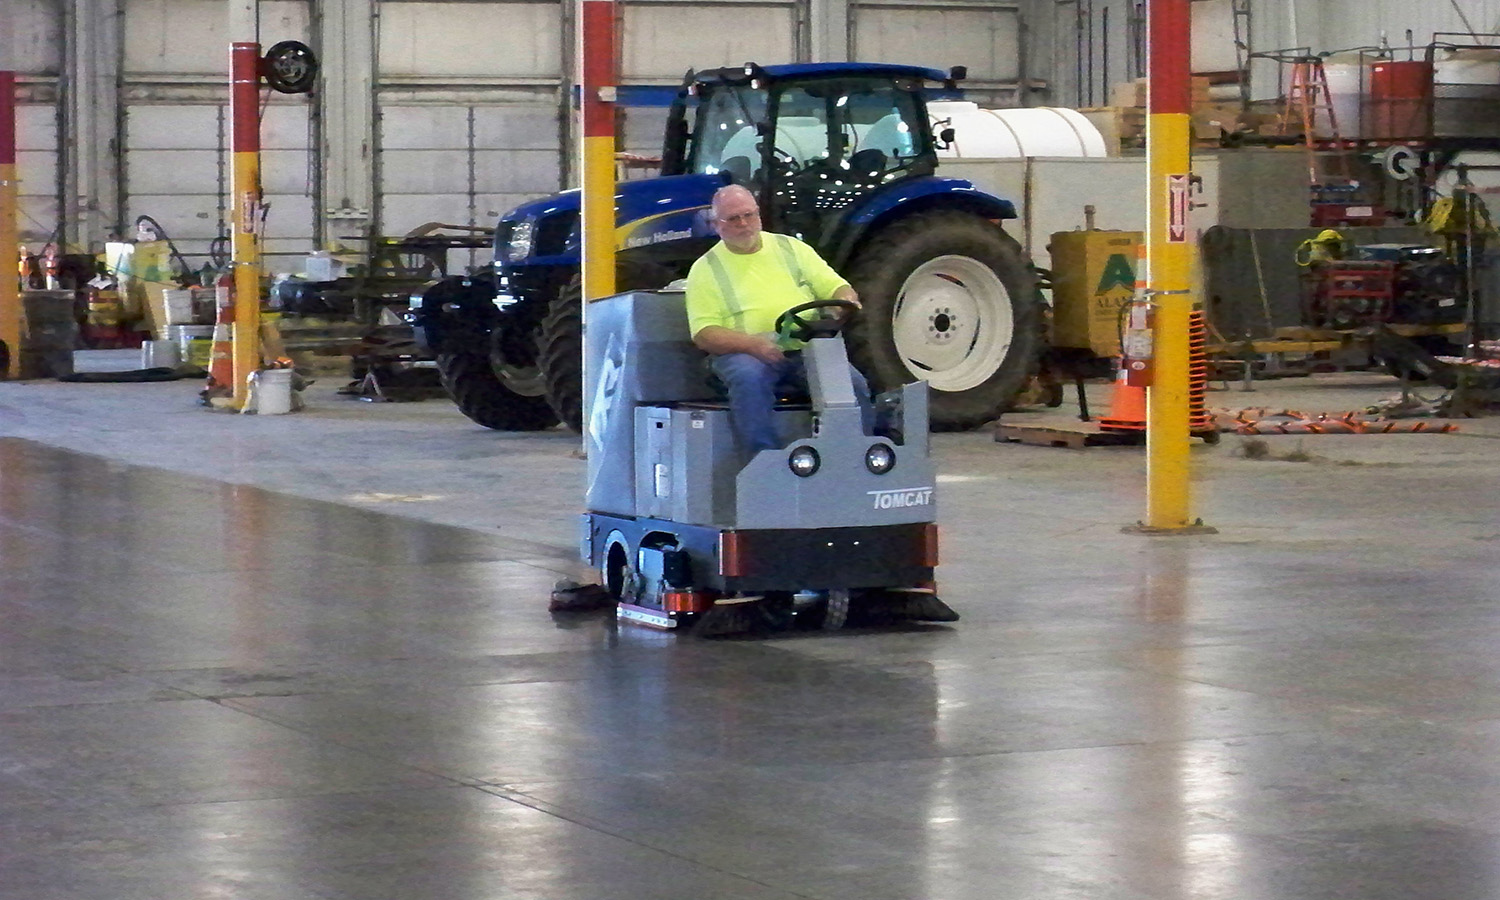 Tomcat Riding Floor Scrubber Demonstration in a Service Bay